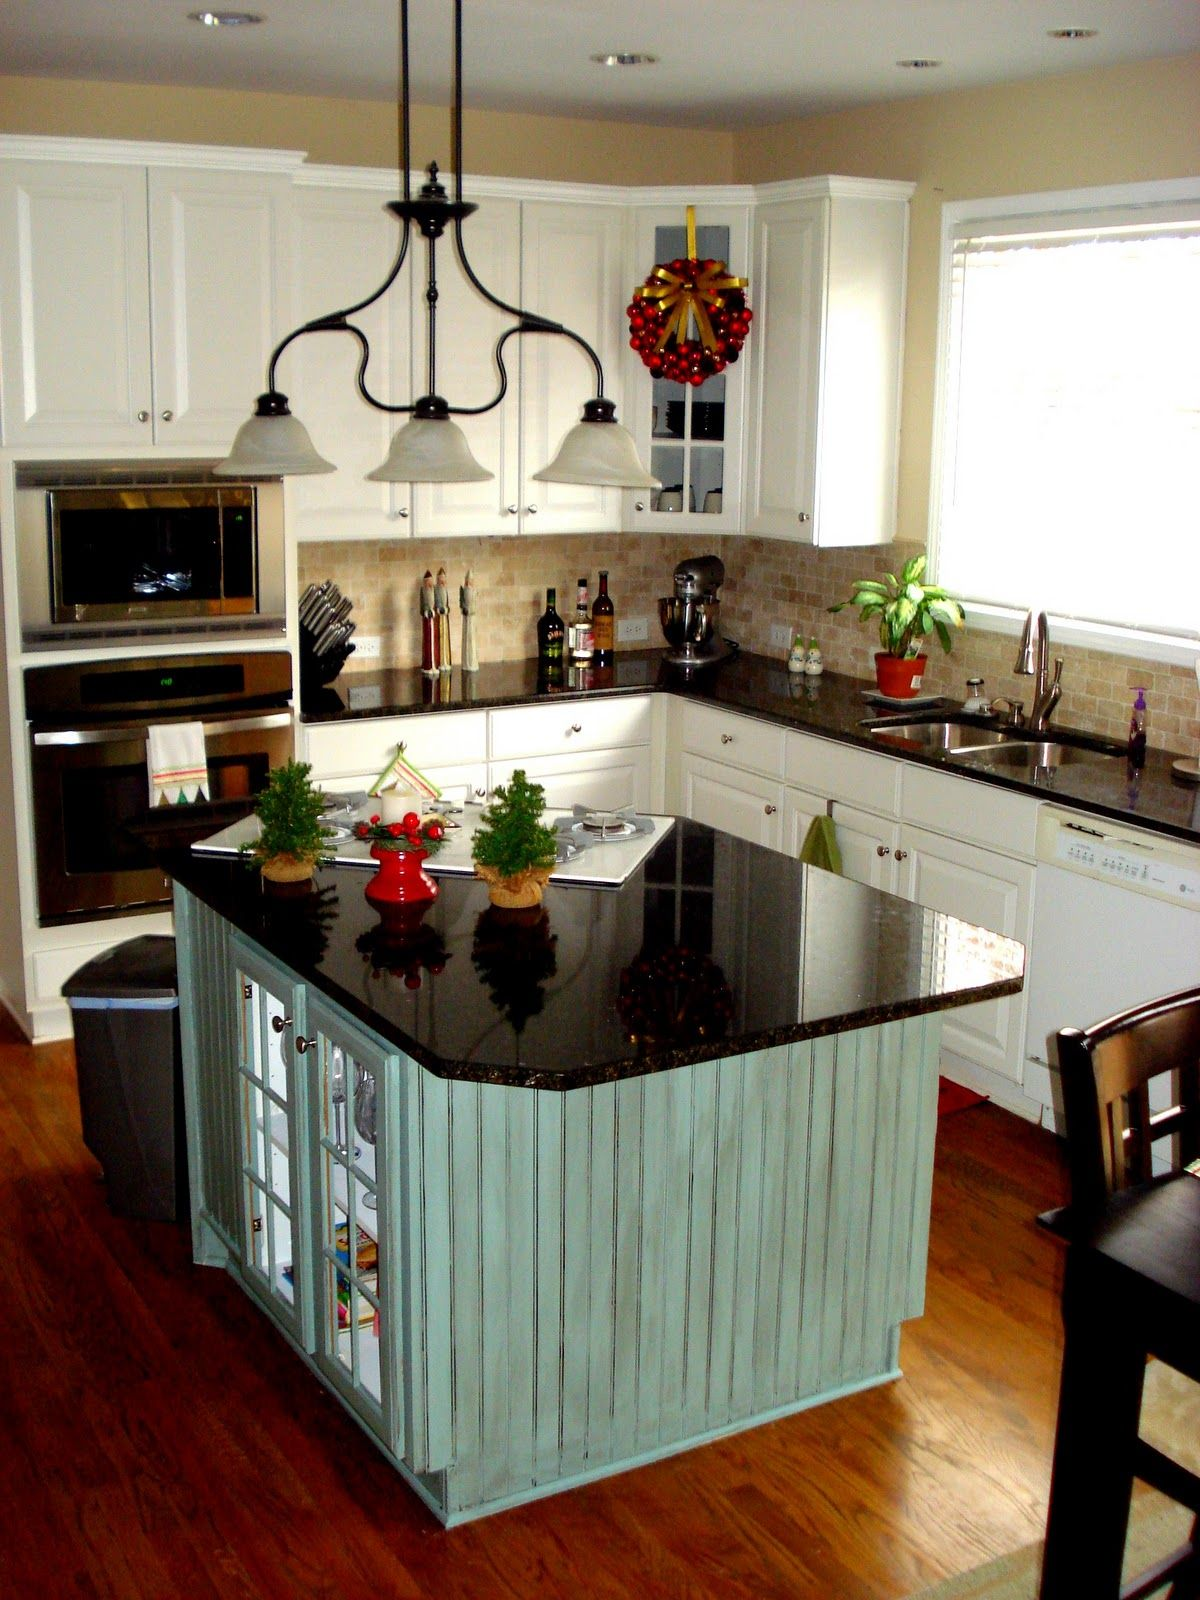 Small Kitchen With Island Stove Love The Black Countertops And Contrasting Island  Dream Home